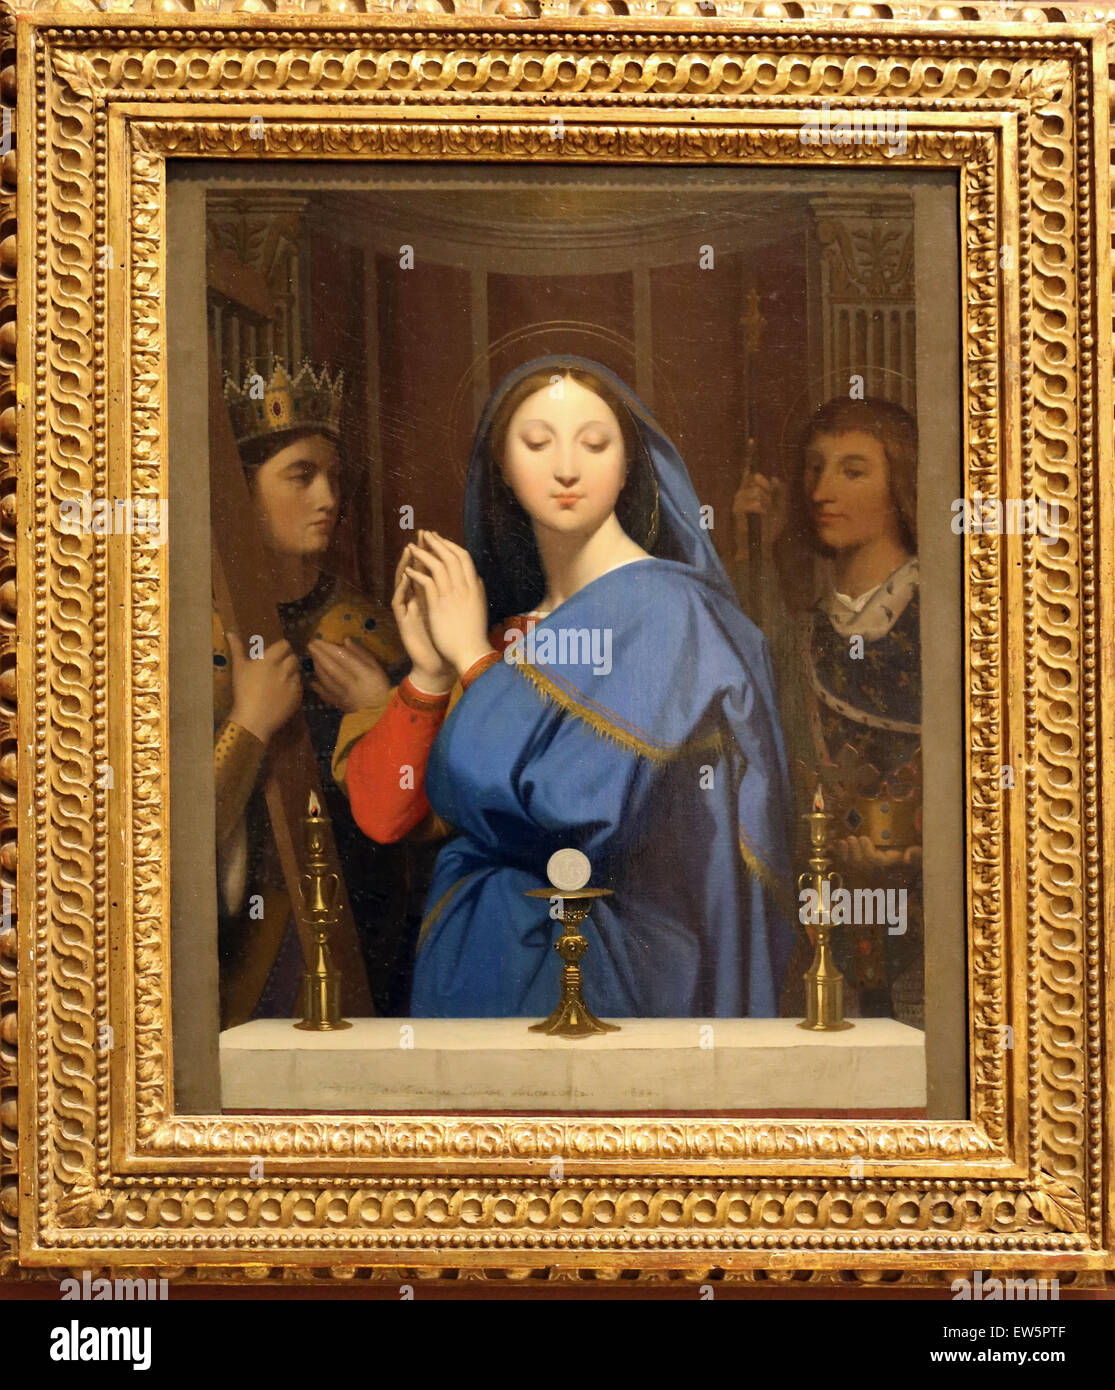 Jean Auguste Dominique Ingres (1780-1867). French painter. The VIrgin Adoring the Host, 1852. Oil on canvas. Metropolitan - Stock Image